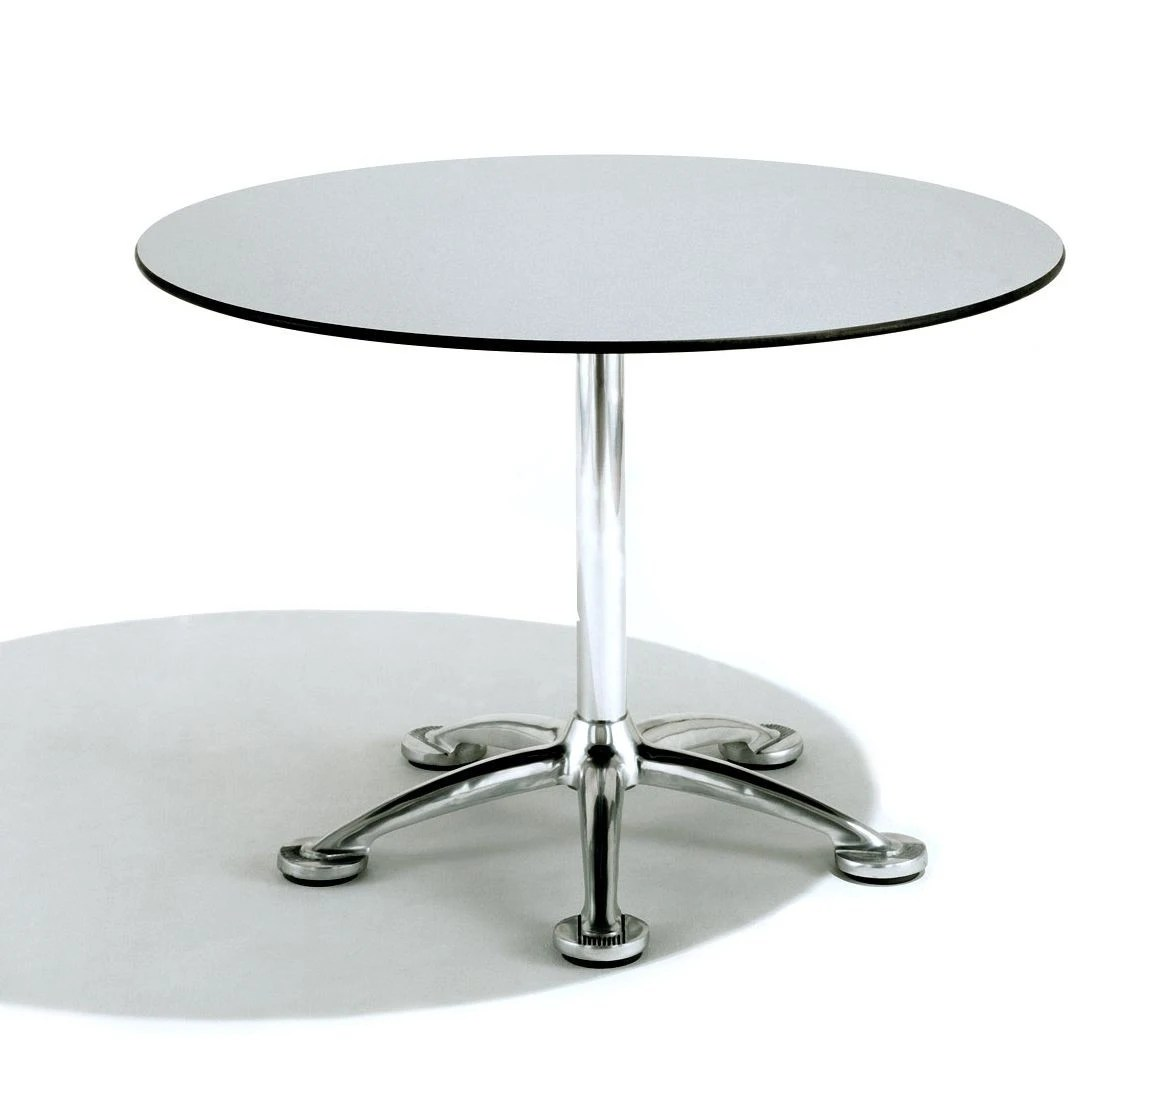 Knoll Table Knoll Jorge Pensi Table